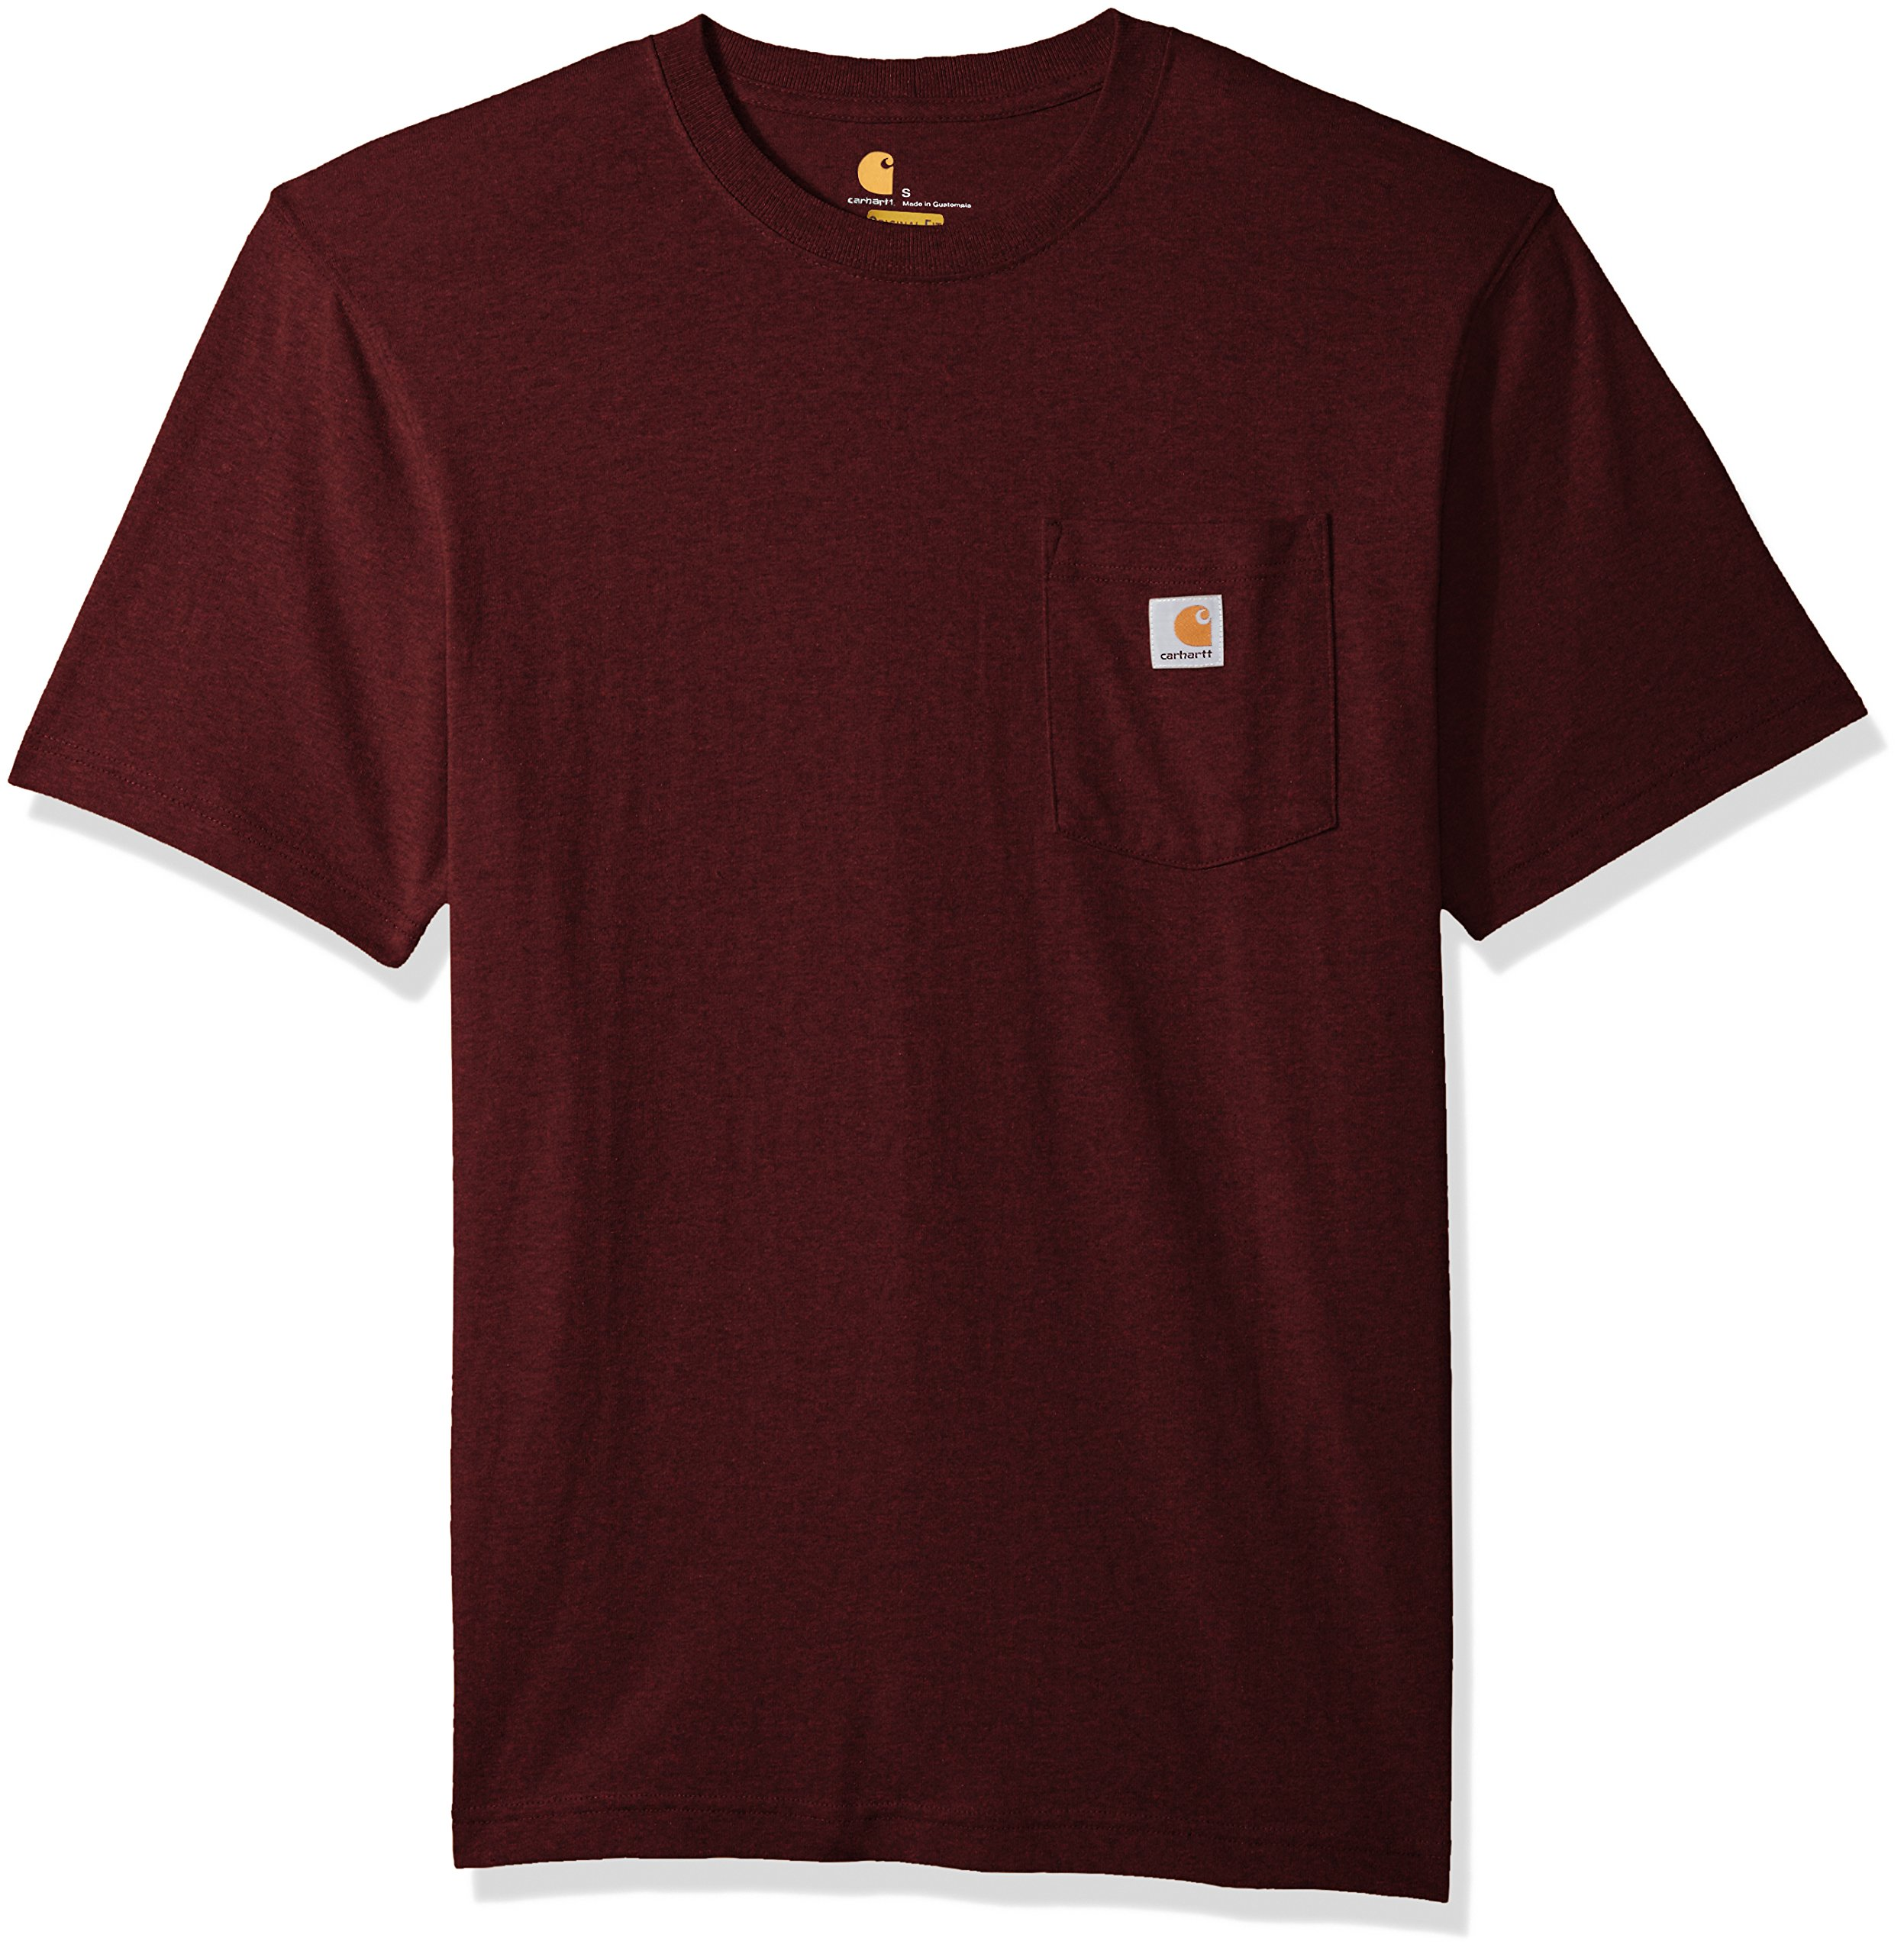 Carhartt Men's Workwear Short Sleeve T-Shirt in Original Fit K87, Port Heather, Large